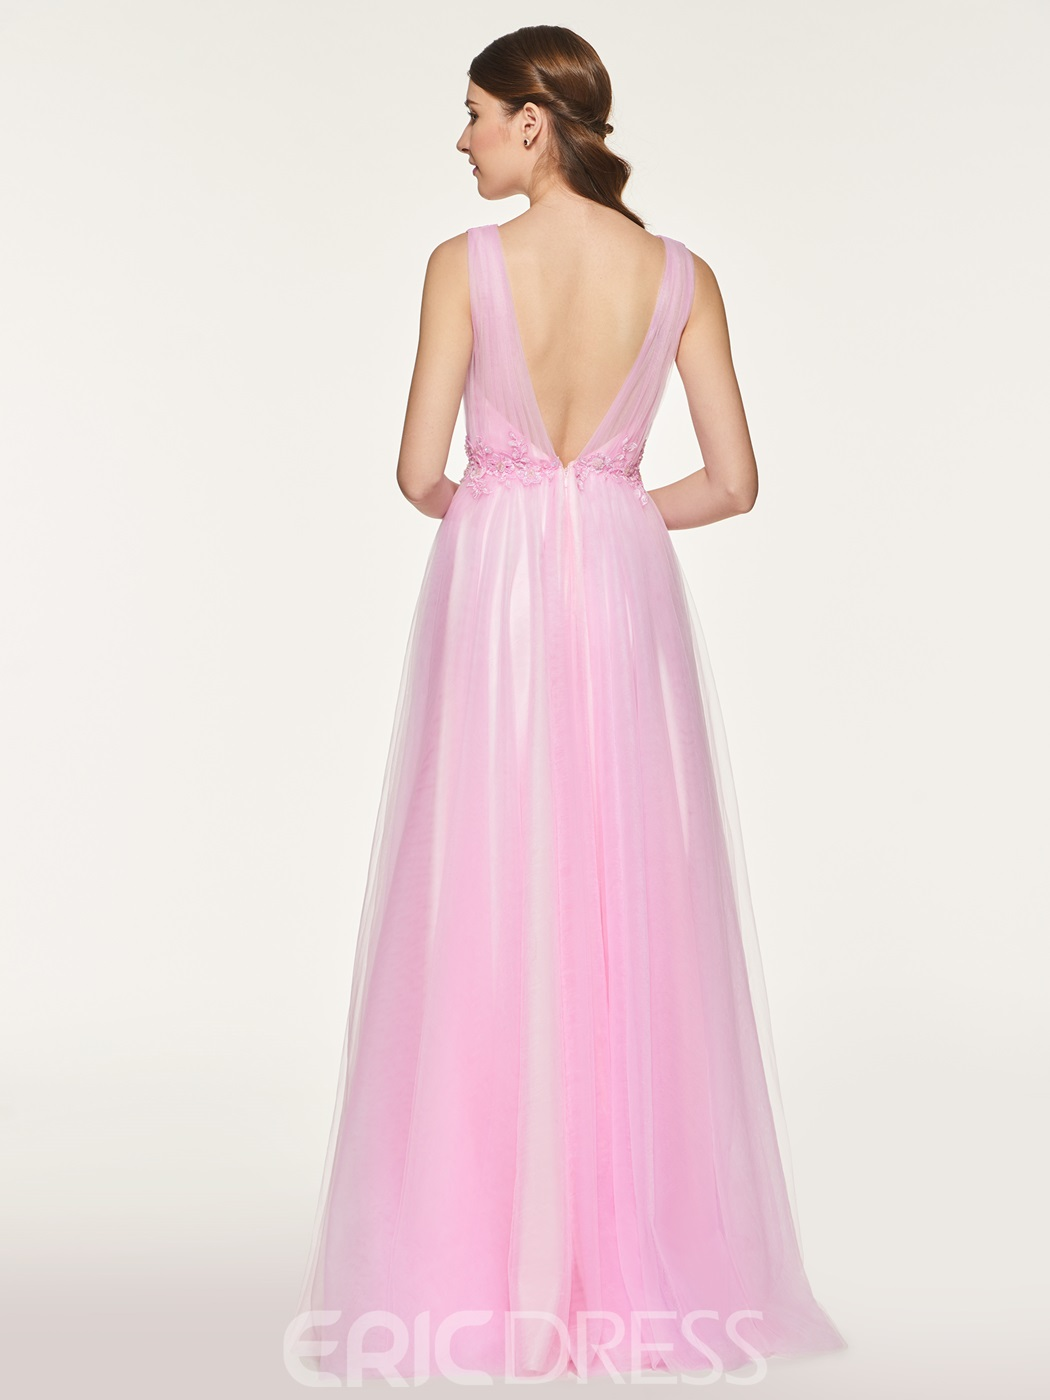 Ericdress Straps Appliques Backless Long Bridesmaid Dress